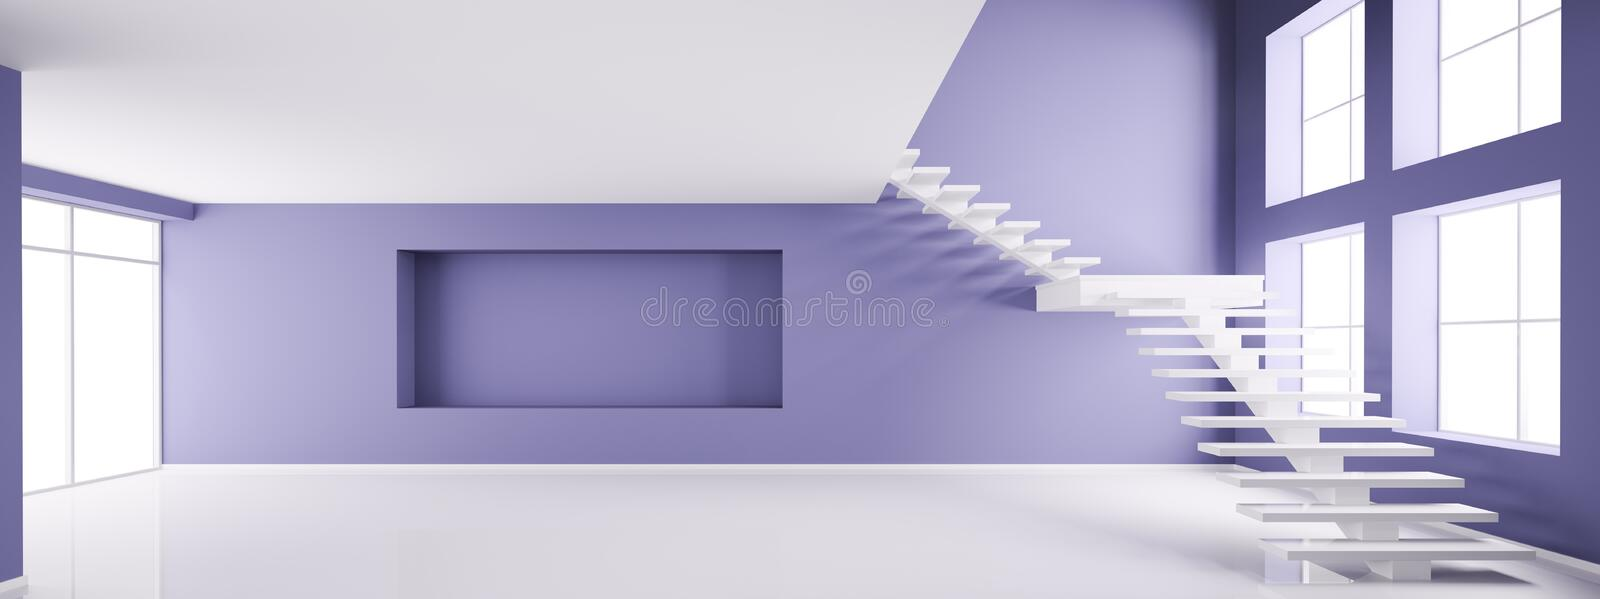 Empty interior 3d render royalty free illustration